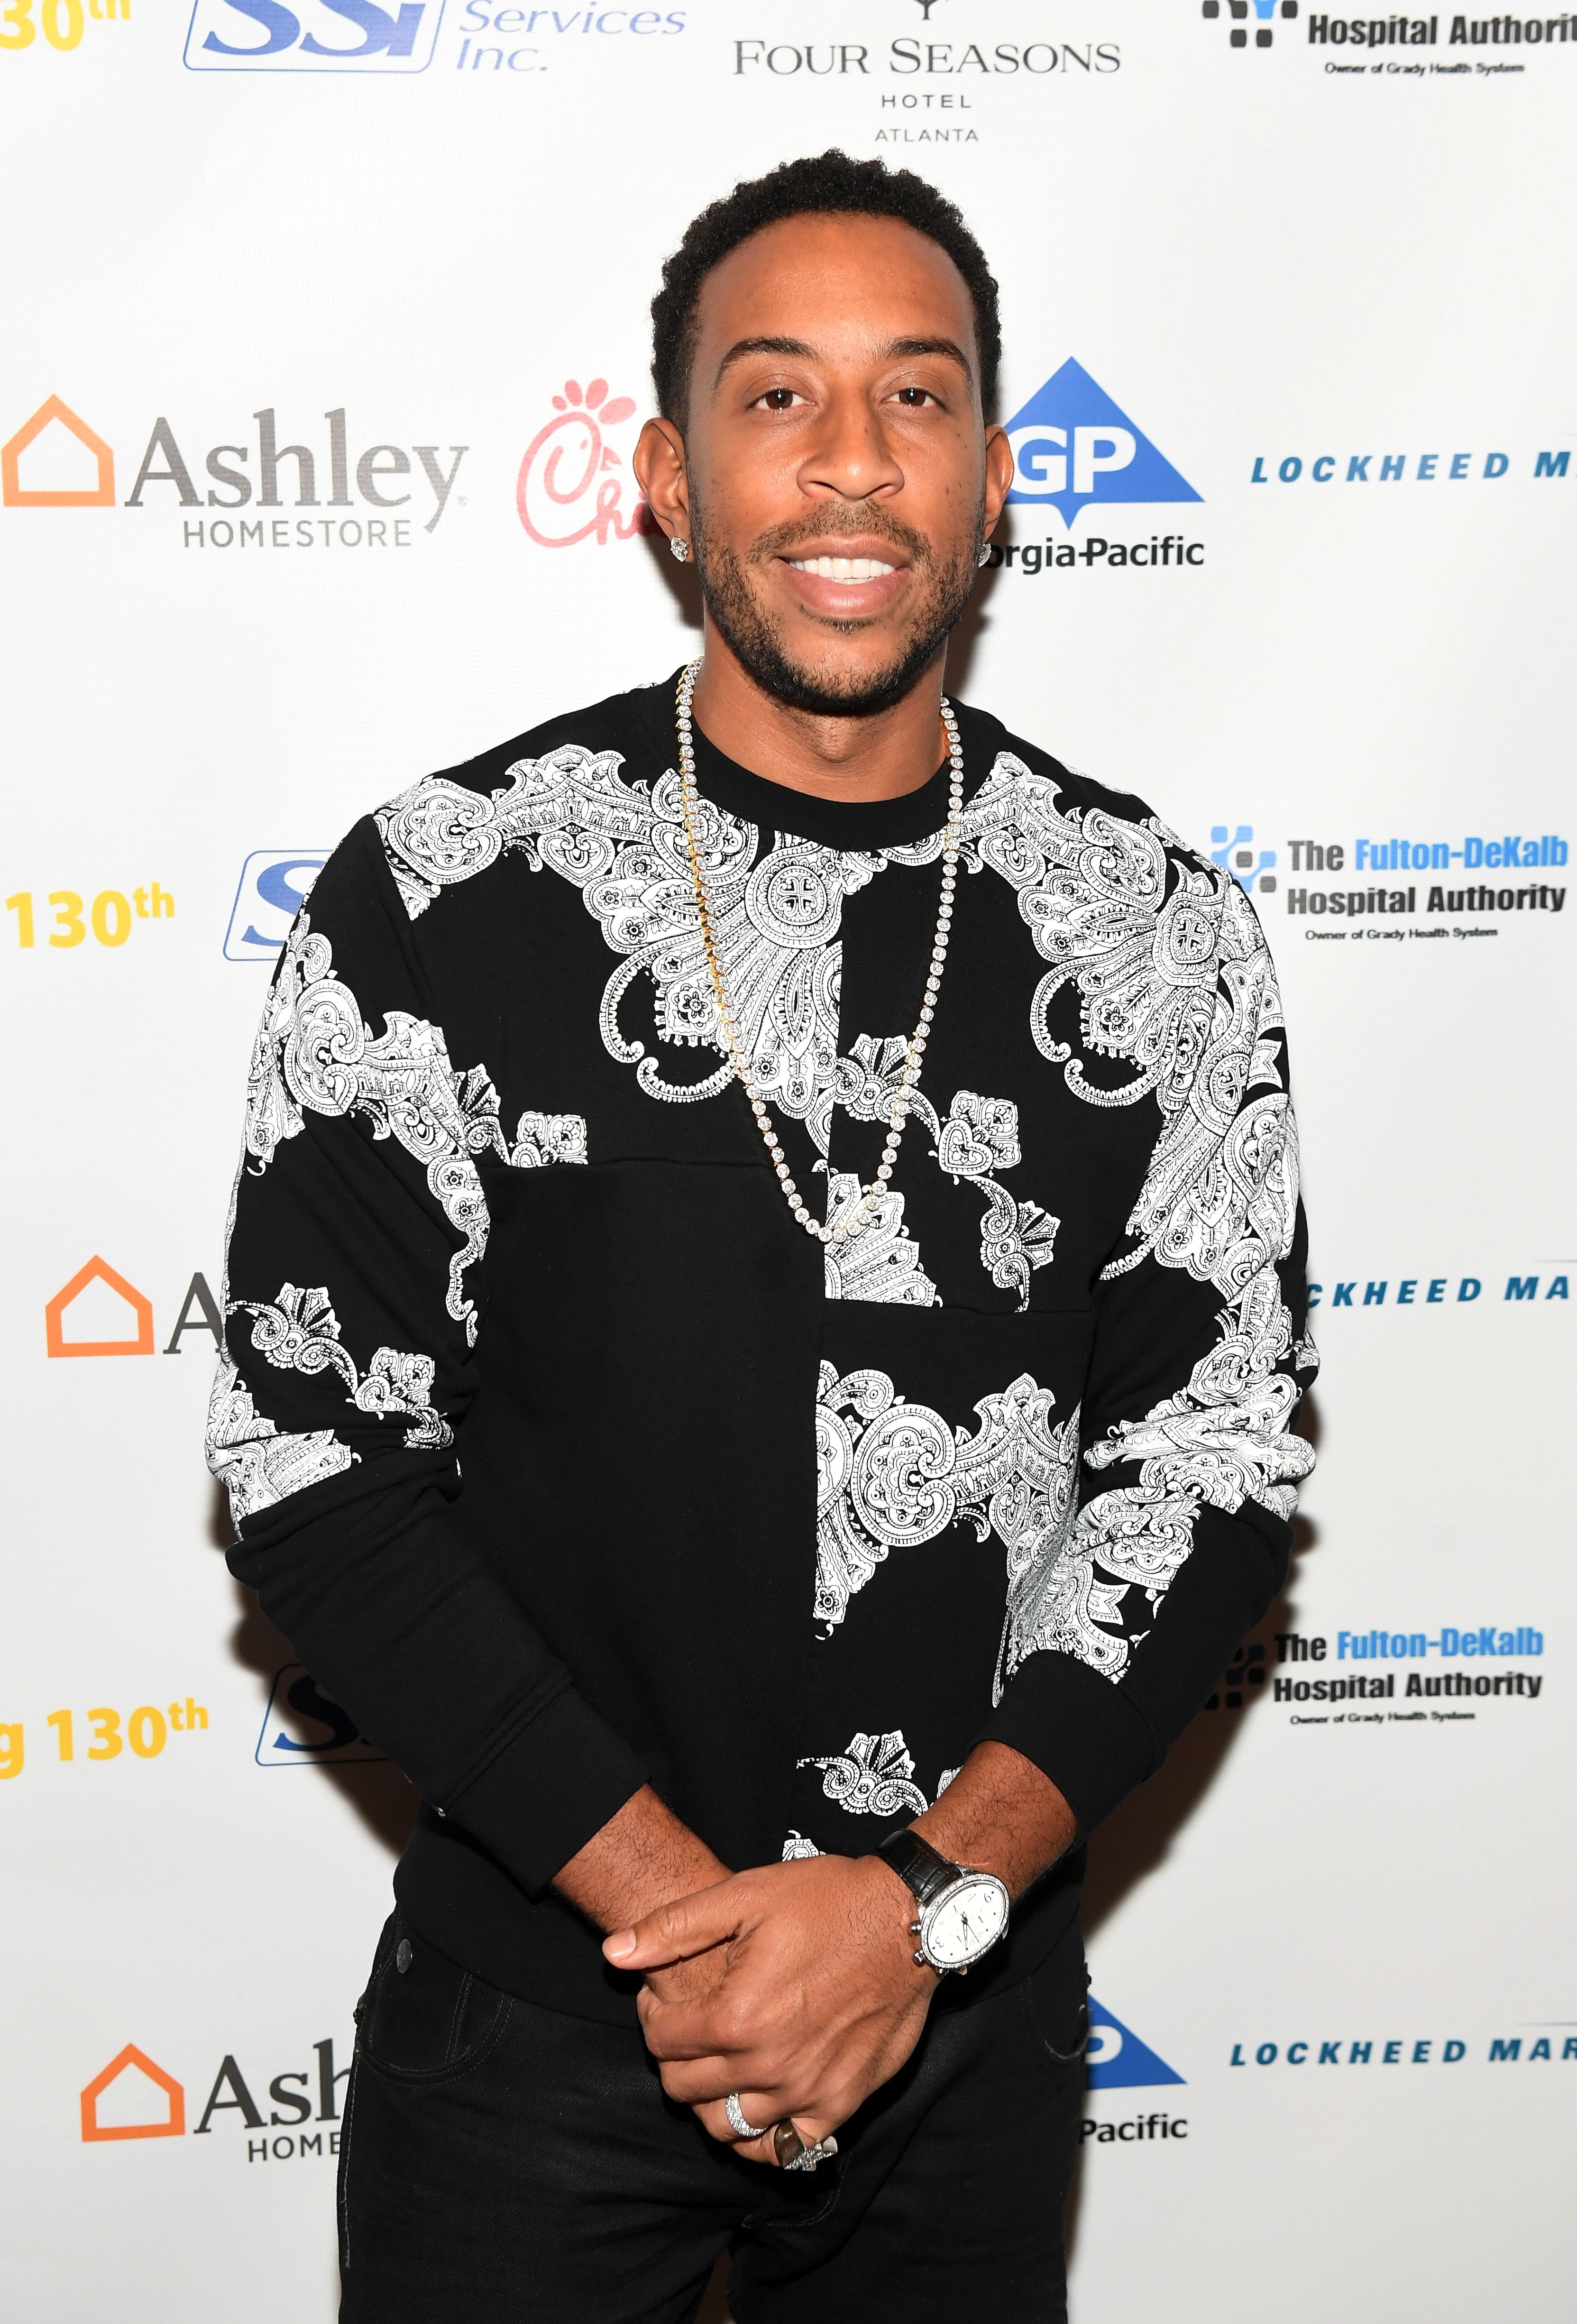 Ludacris during the Carrie Steele-Pitts Home 130th Anniversary Gala at Four Seasons Hotel on March 24, 2018 in Atlanta, Georgia. | Source: Getty Images